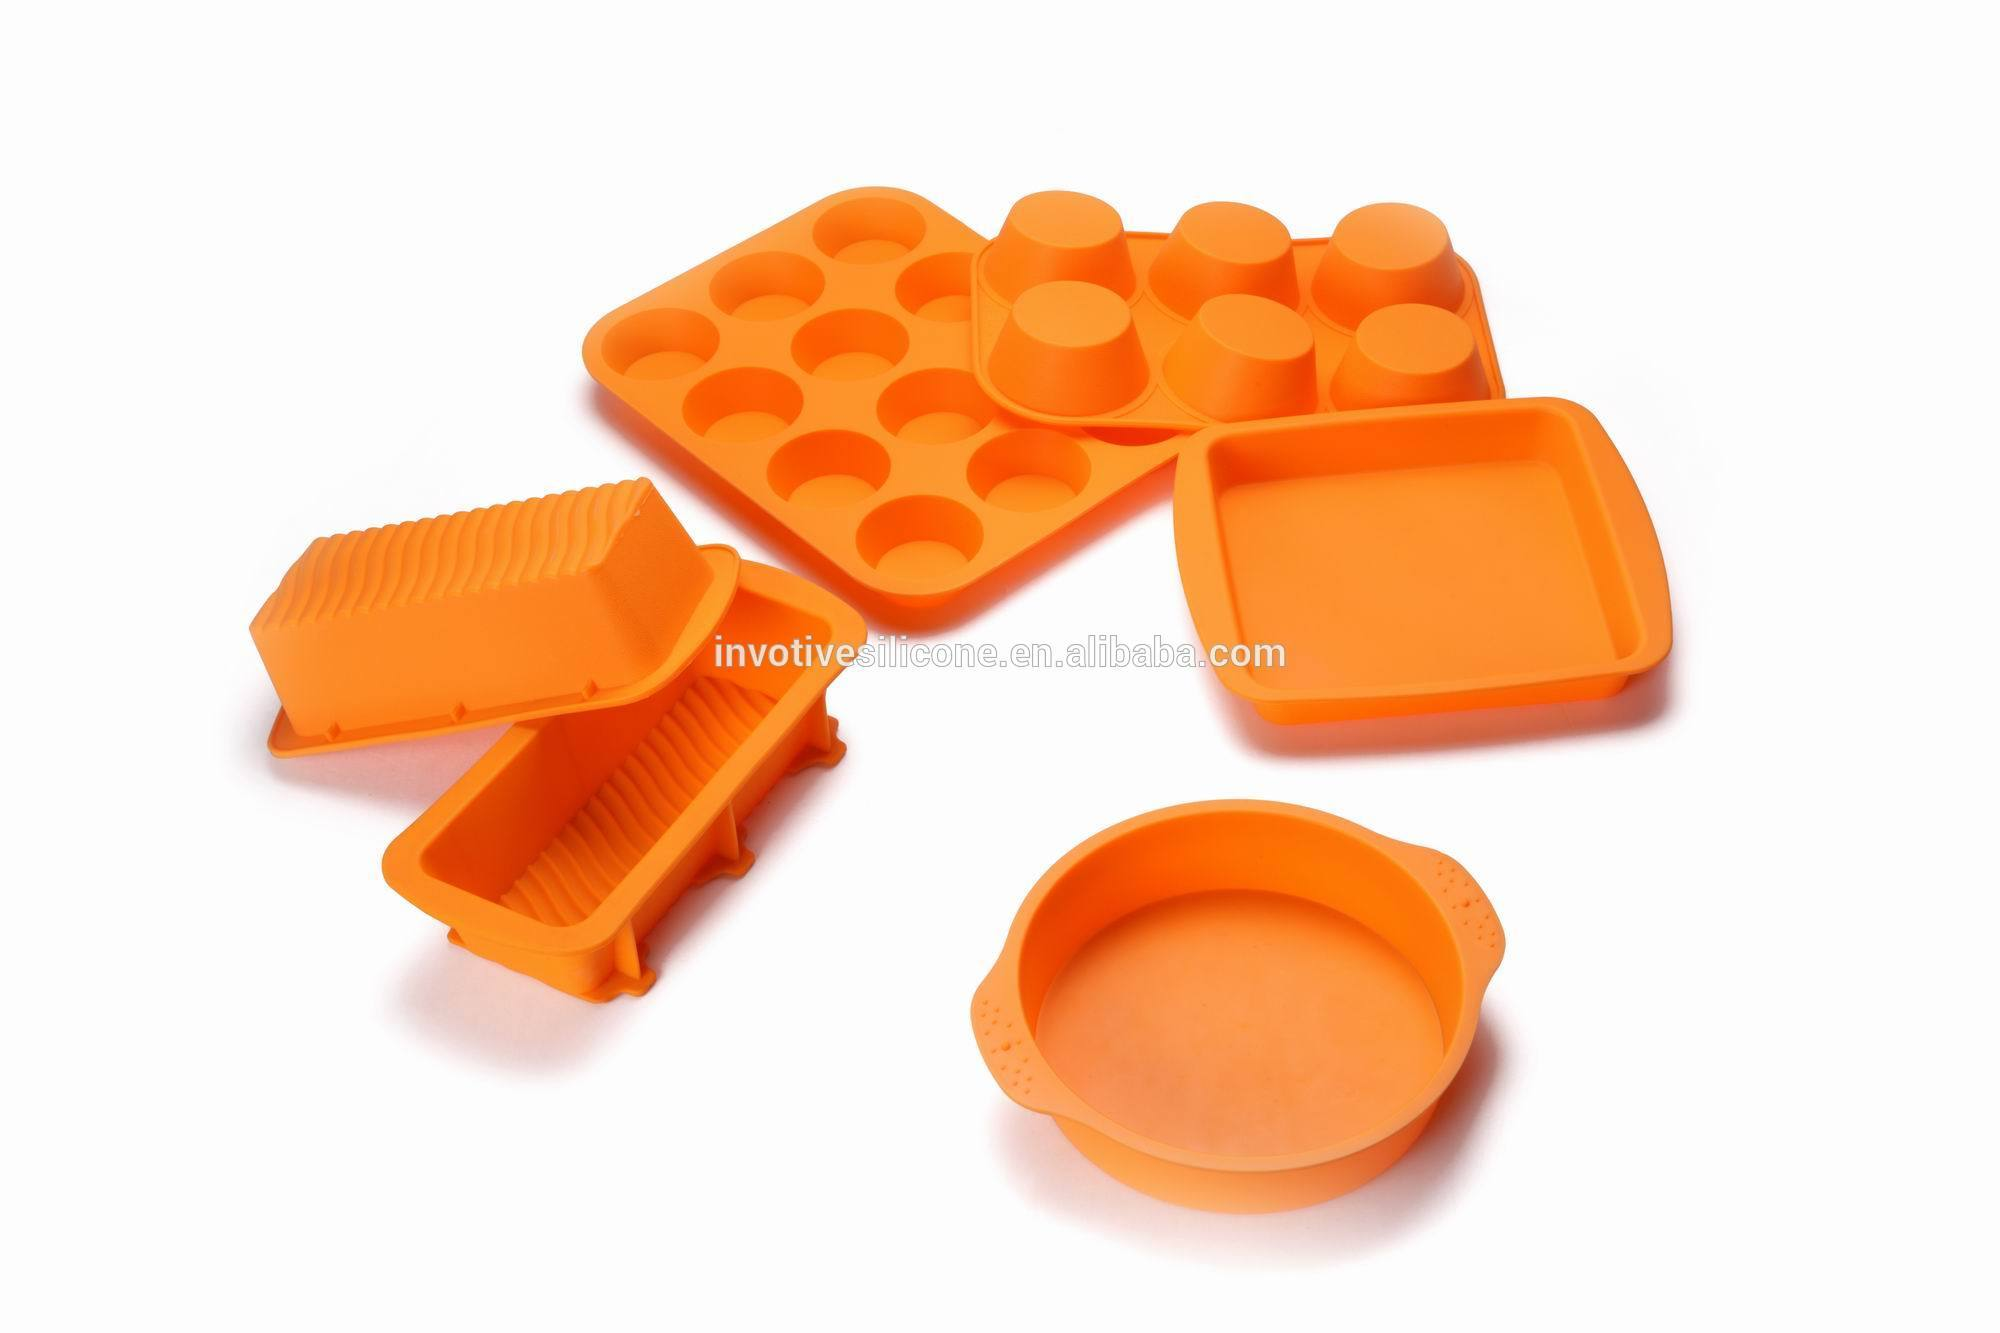 Invotive Dongguan Silicone baking mold for business for toddlers-3